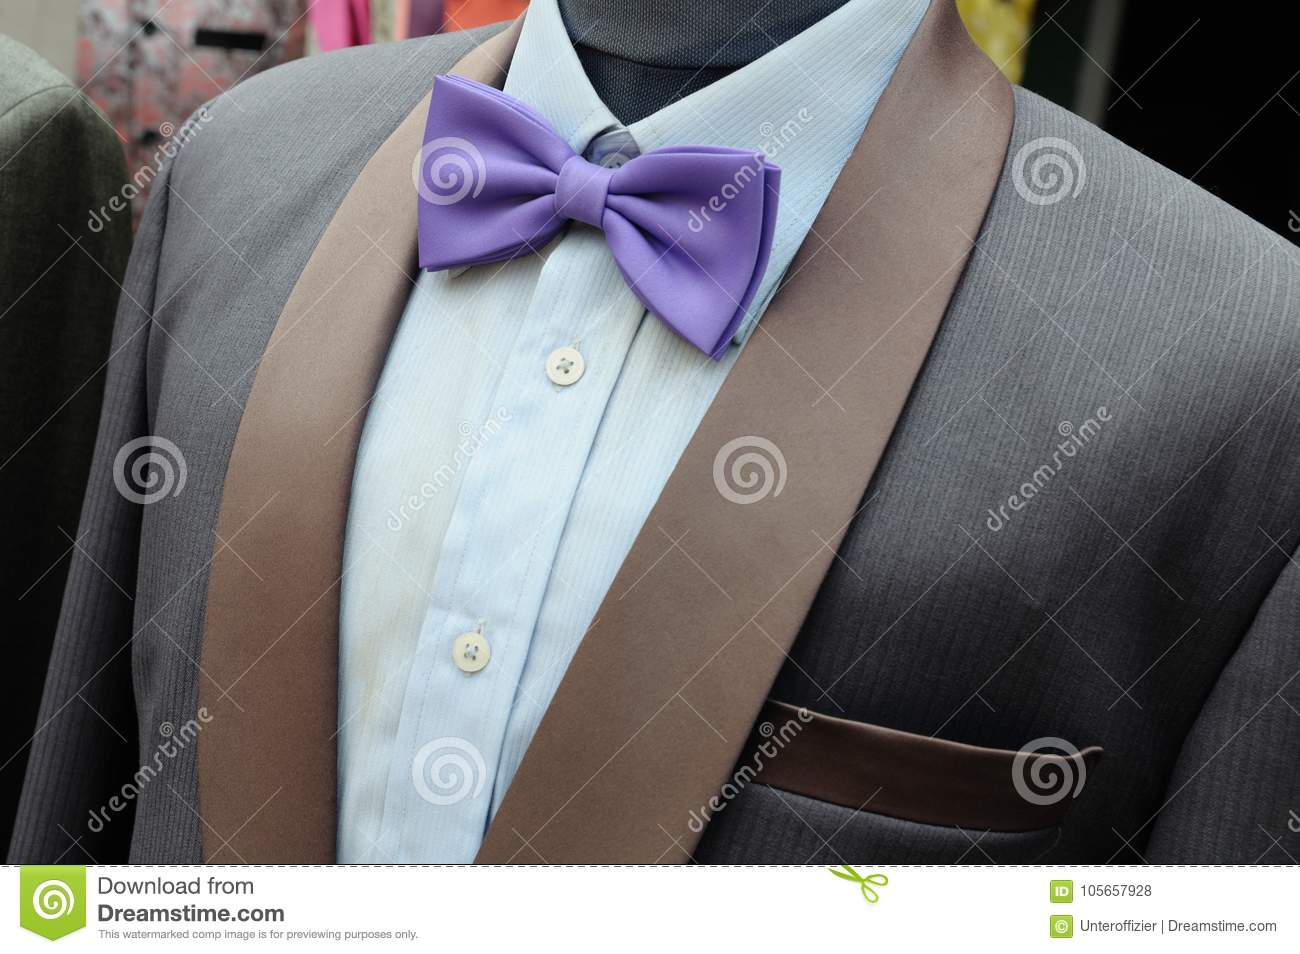 ba8f5d9bac74 Suit formal wear for men on a headless mannequins display. It has a purple  bow tie, dark grey suit and light blue shirt.